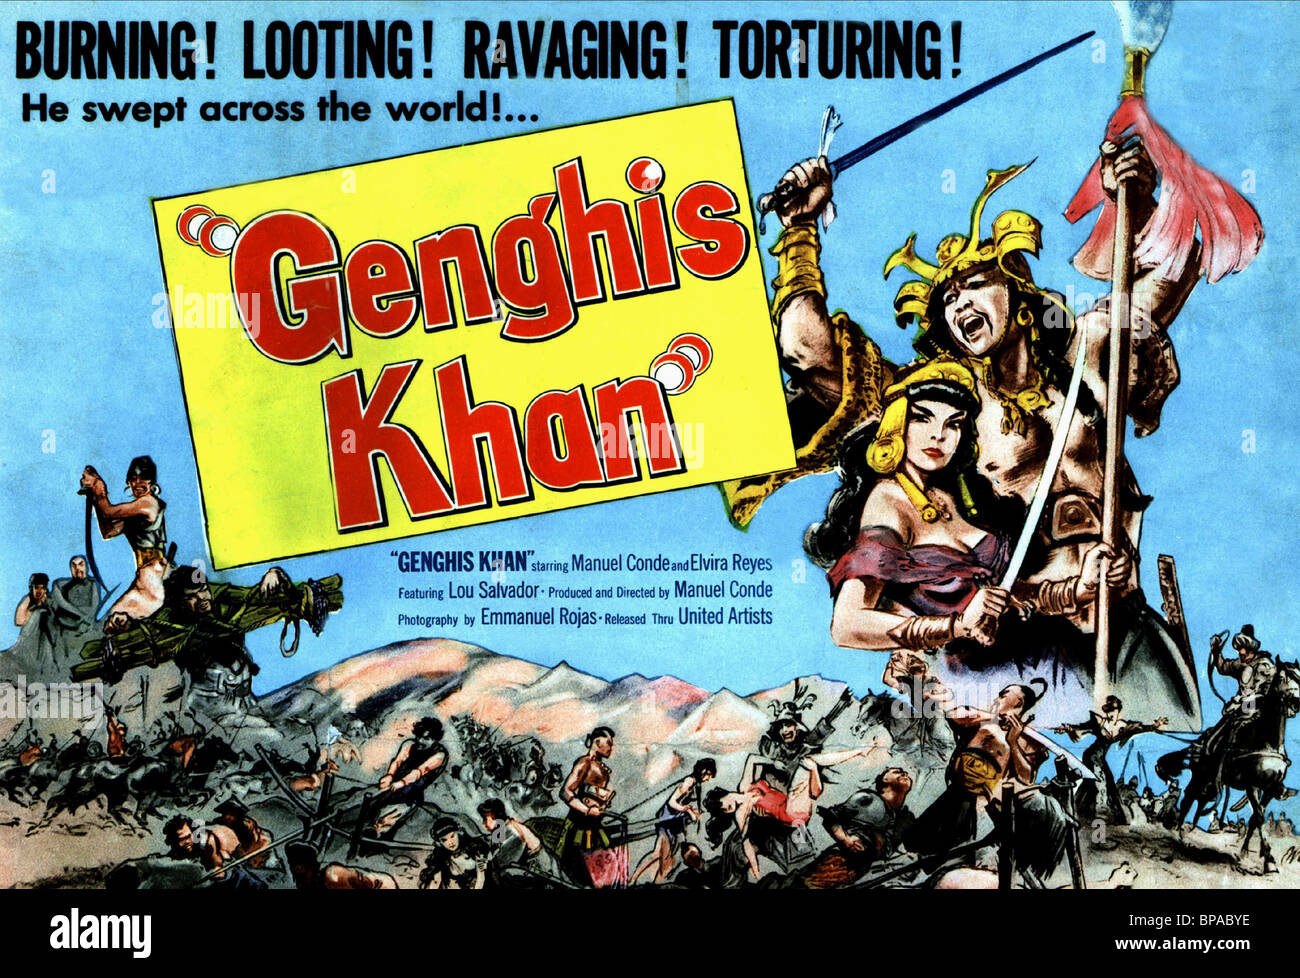 FILM POSTER GENGHIS KHAN (1950 Stock Photo, Royalty Free Image ...